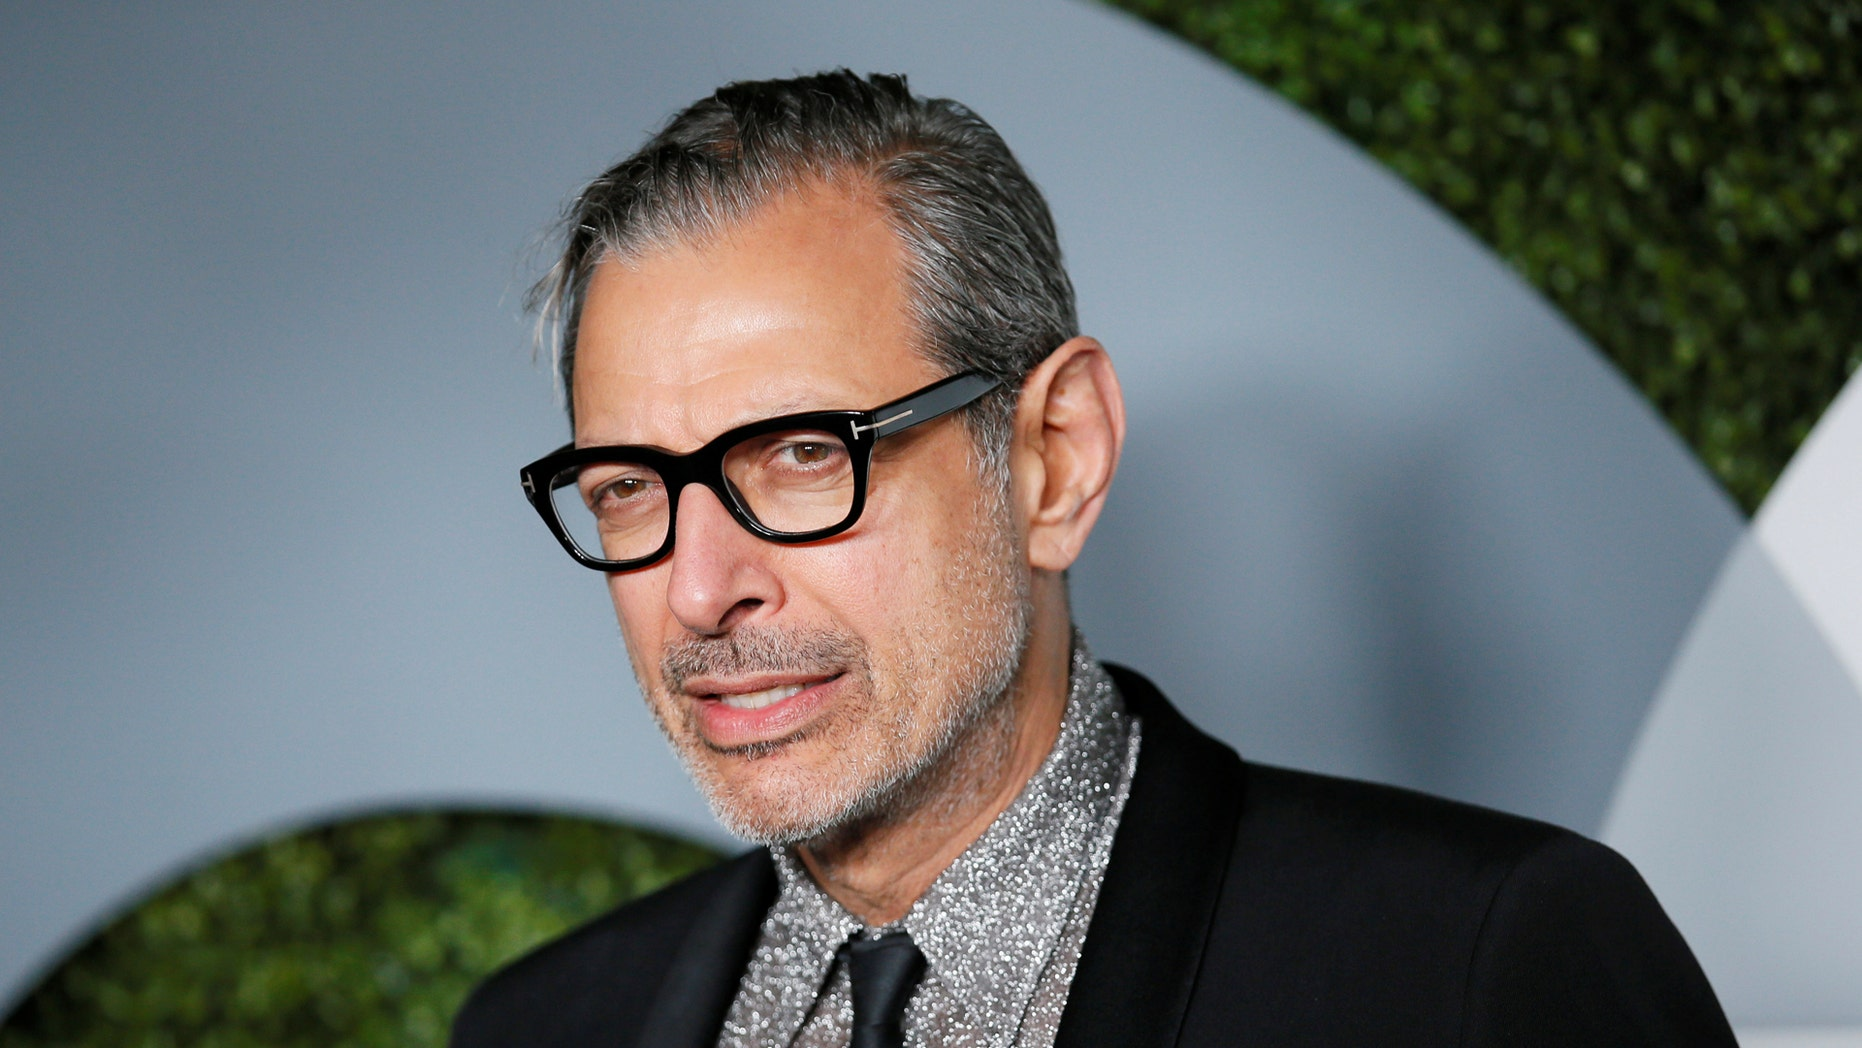 File photo: Actor Jeff Goldblum poses at the GQ Men of the Year Party in West Hollywood, California, December 8, 2016. (REUTERS/Danny Moloshok)